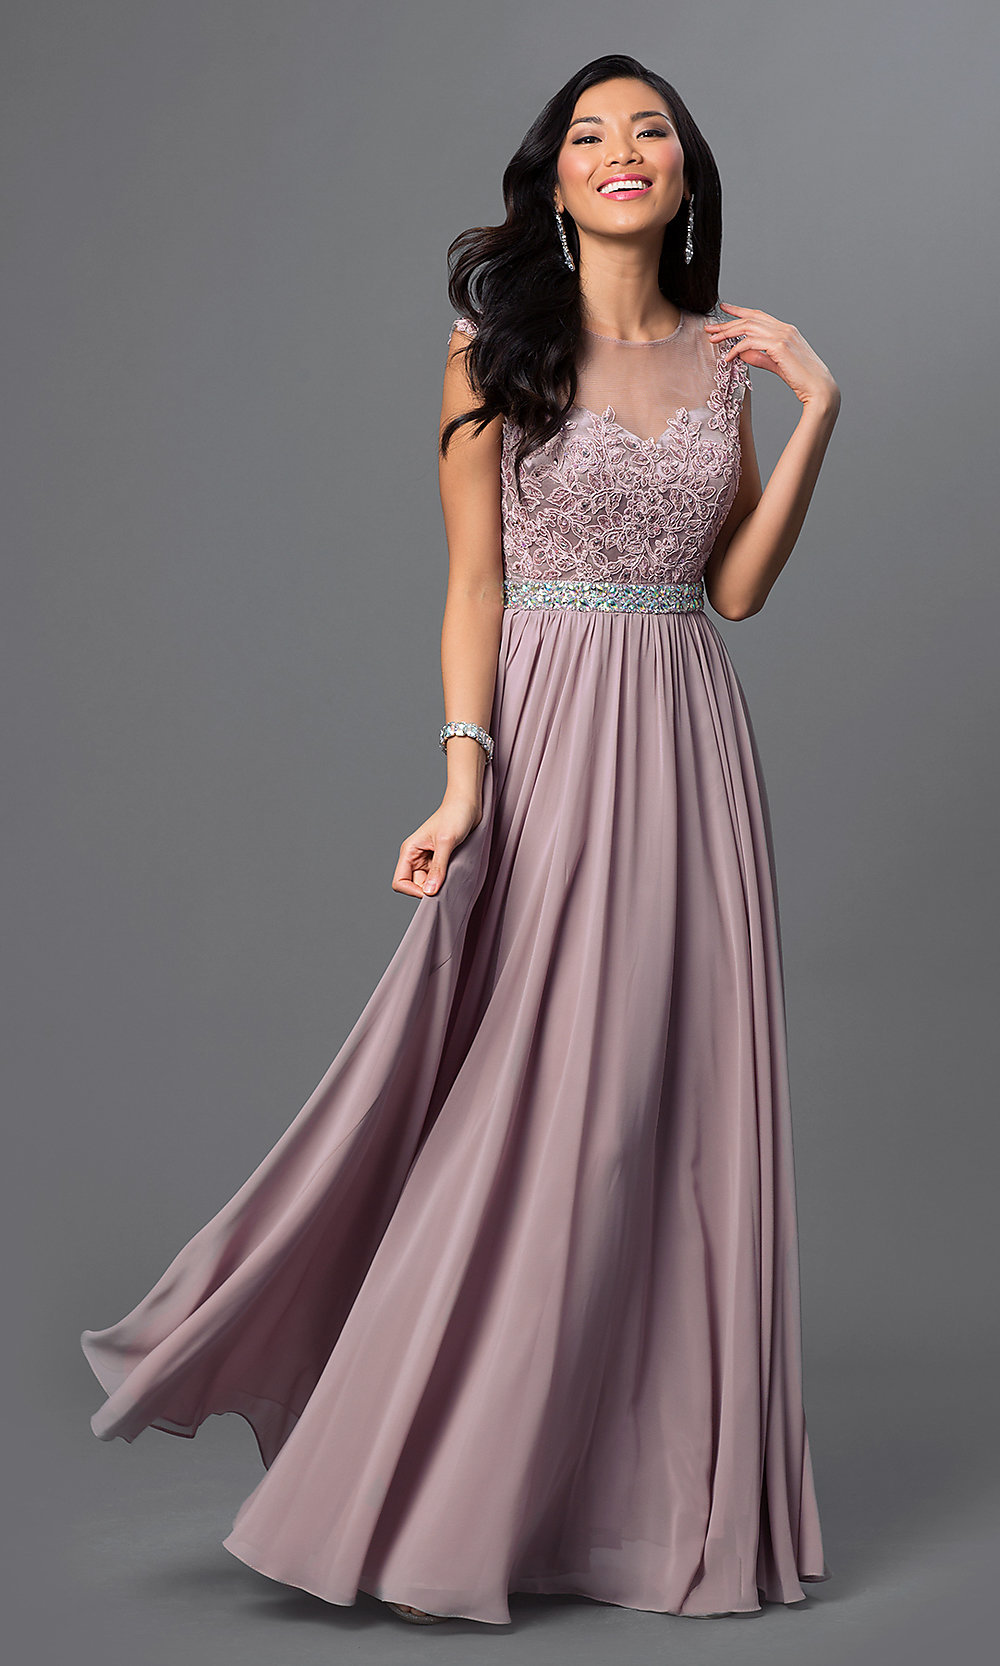 Lace Illusion Long Plus-Size Prom Dress - PromGirl